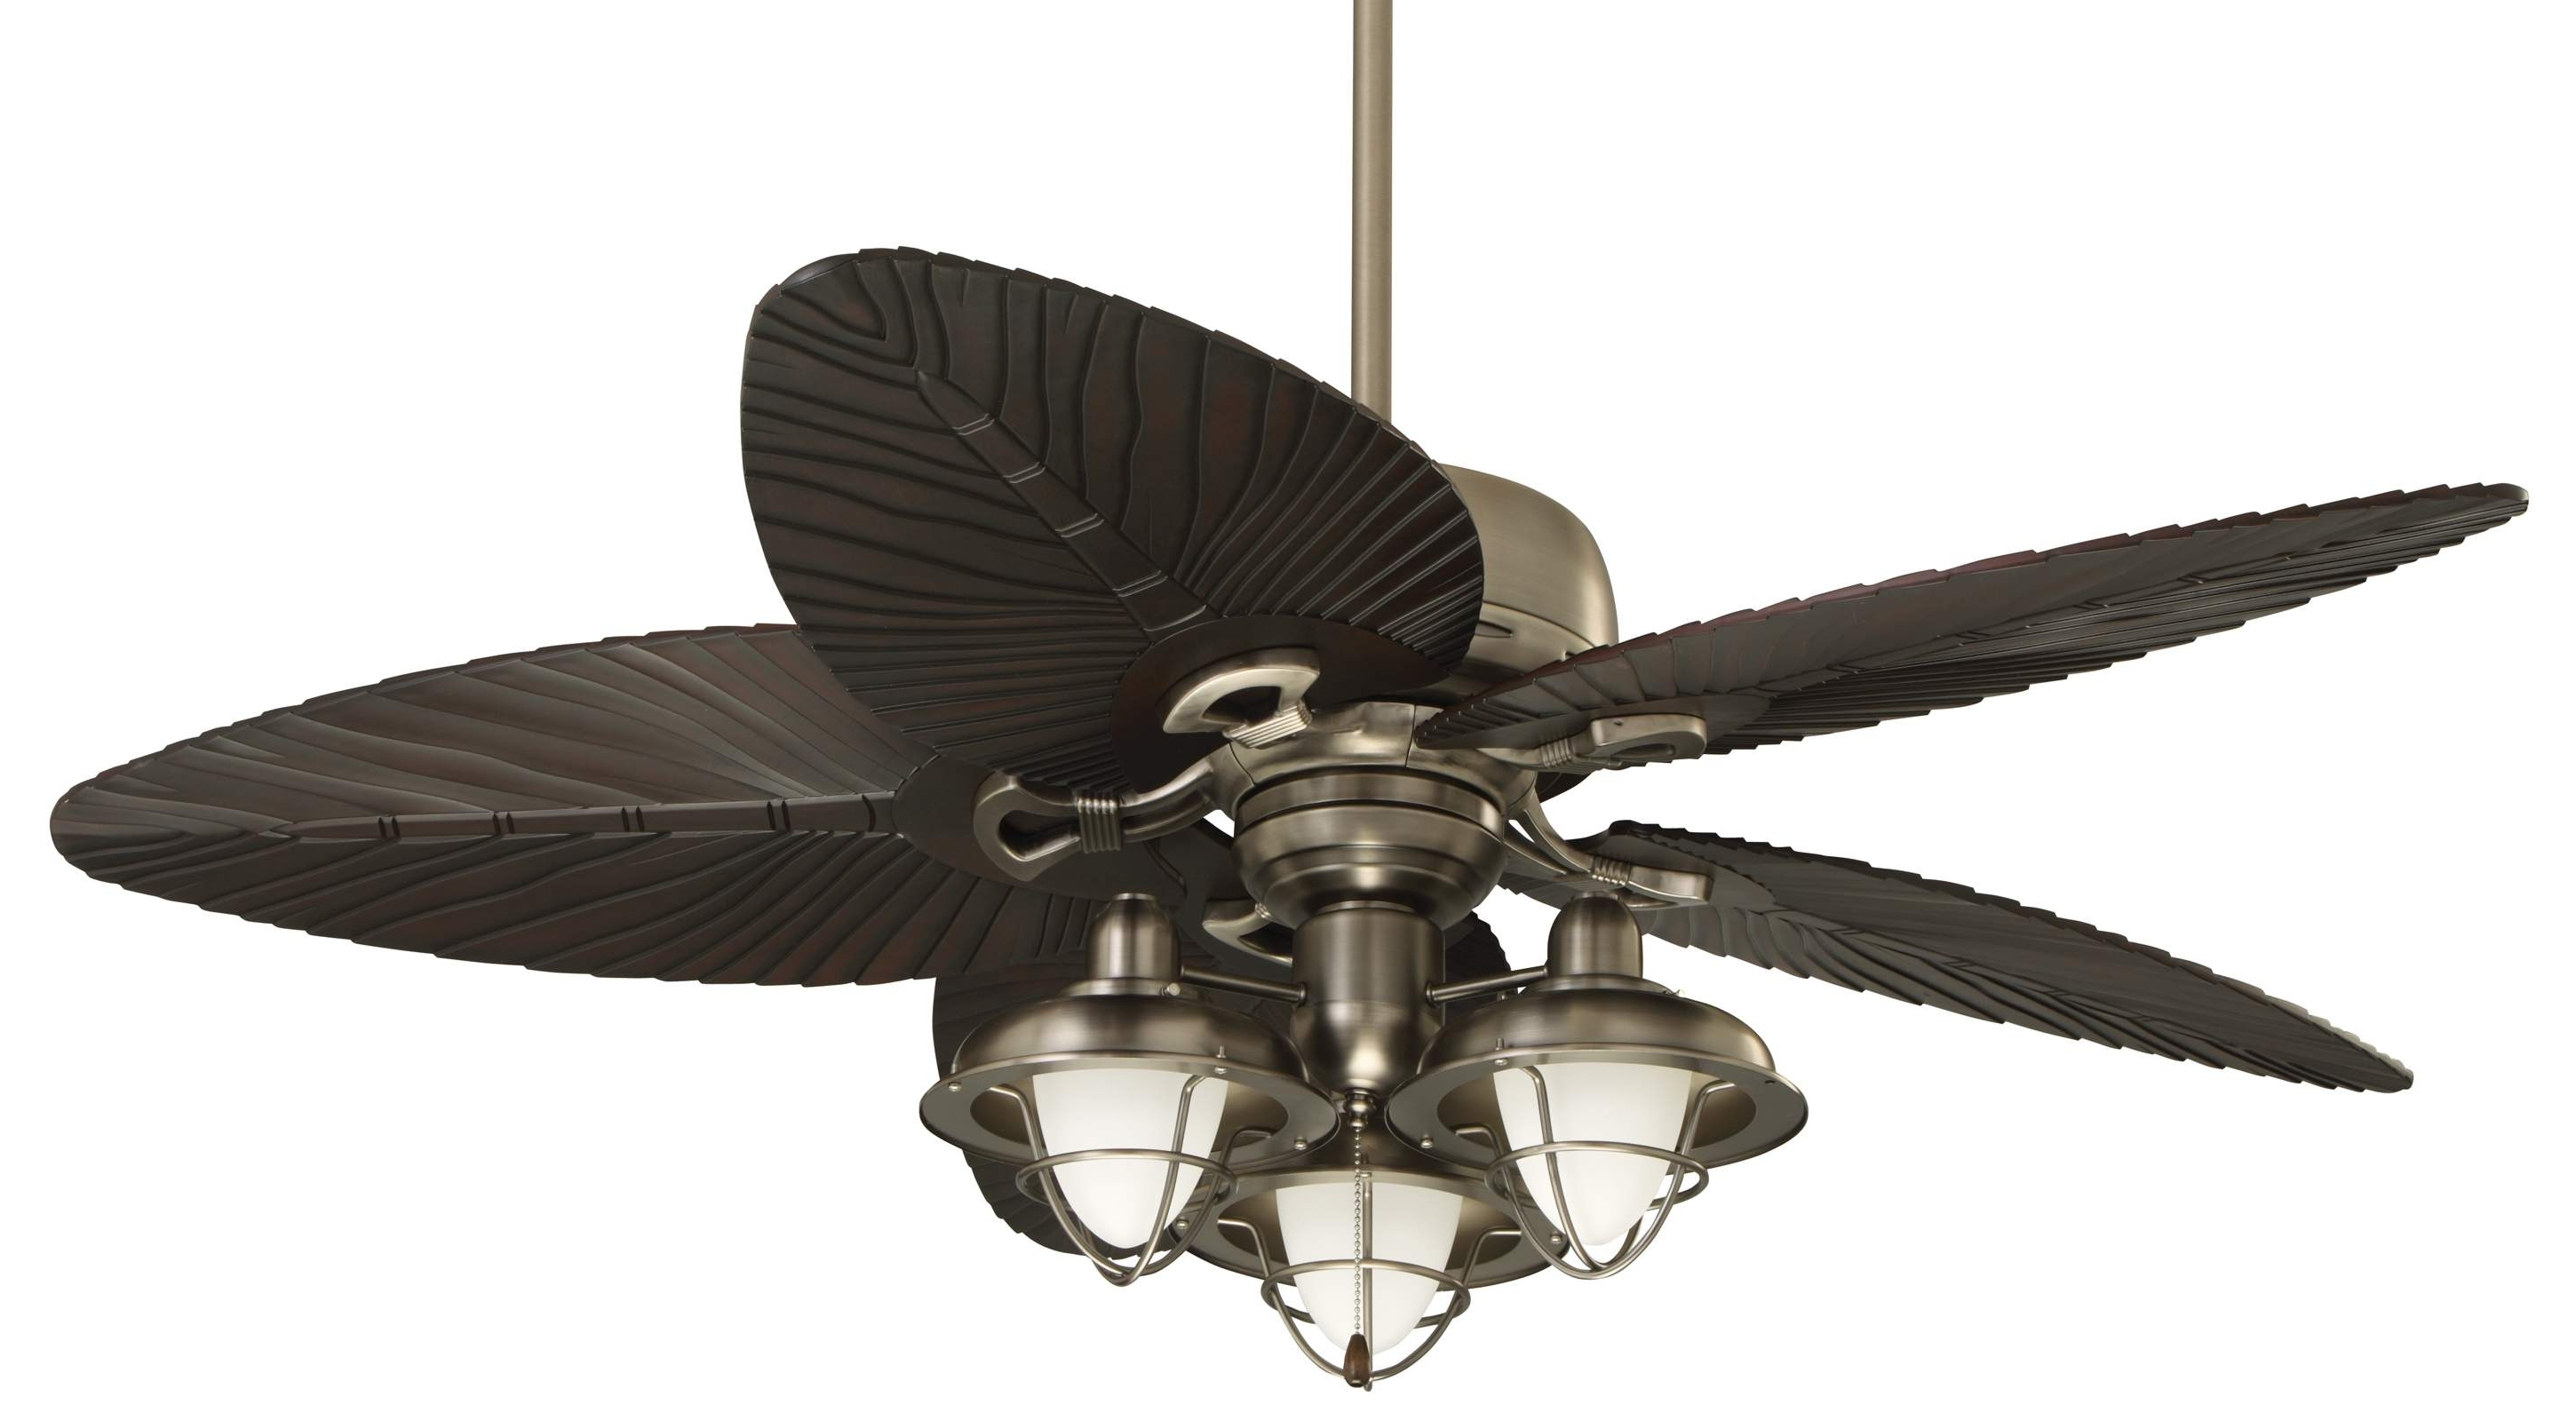 Tropical Outdoor Ceiling Fans – Pixball With Regard To Trendy Tropical Design Outdoor Ceiling Fans (Gallery 7 of 20)